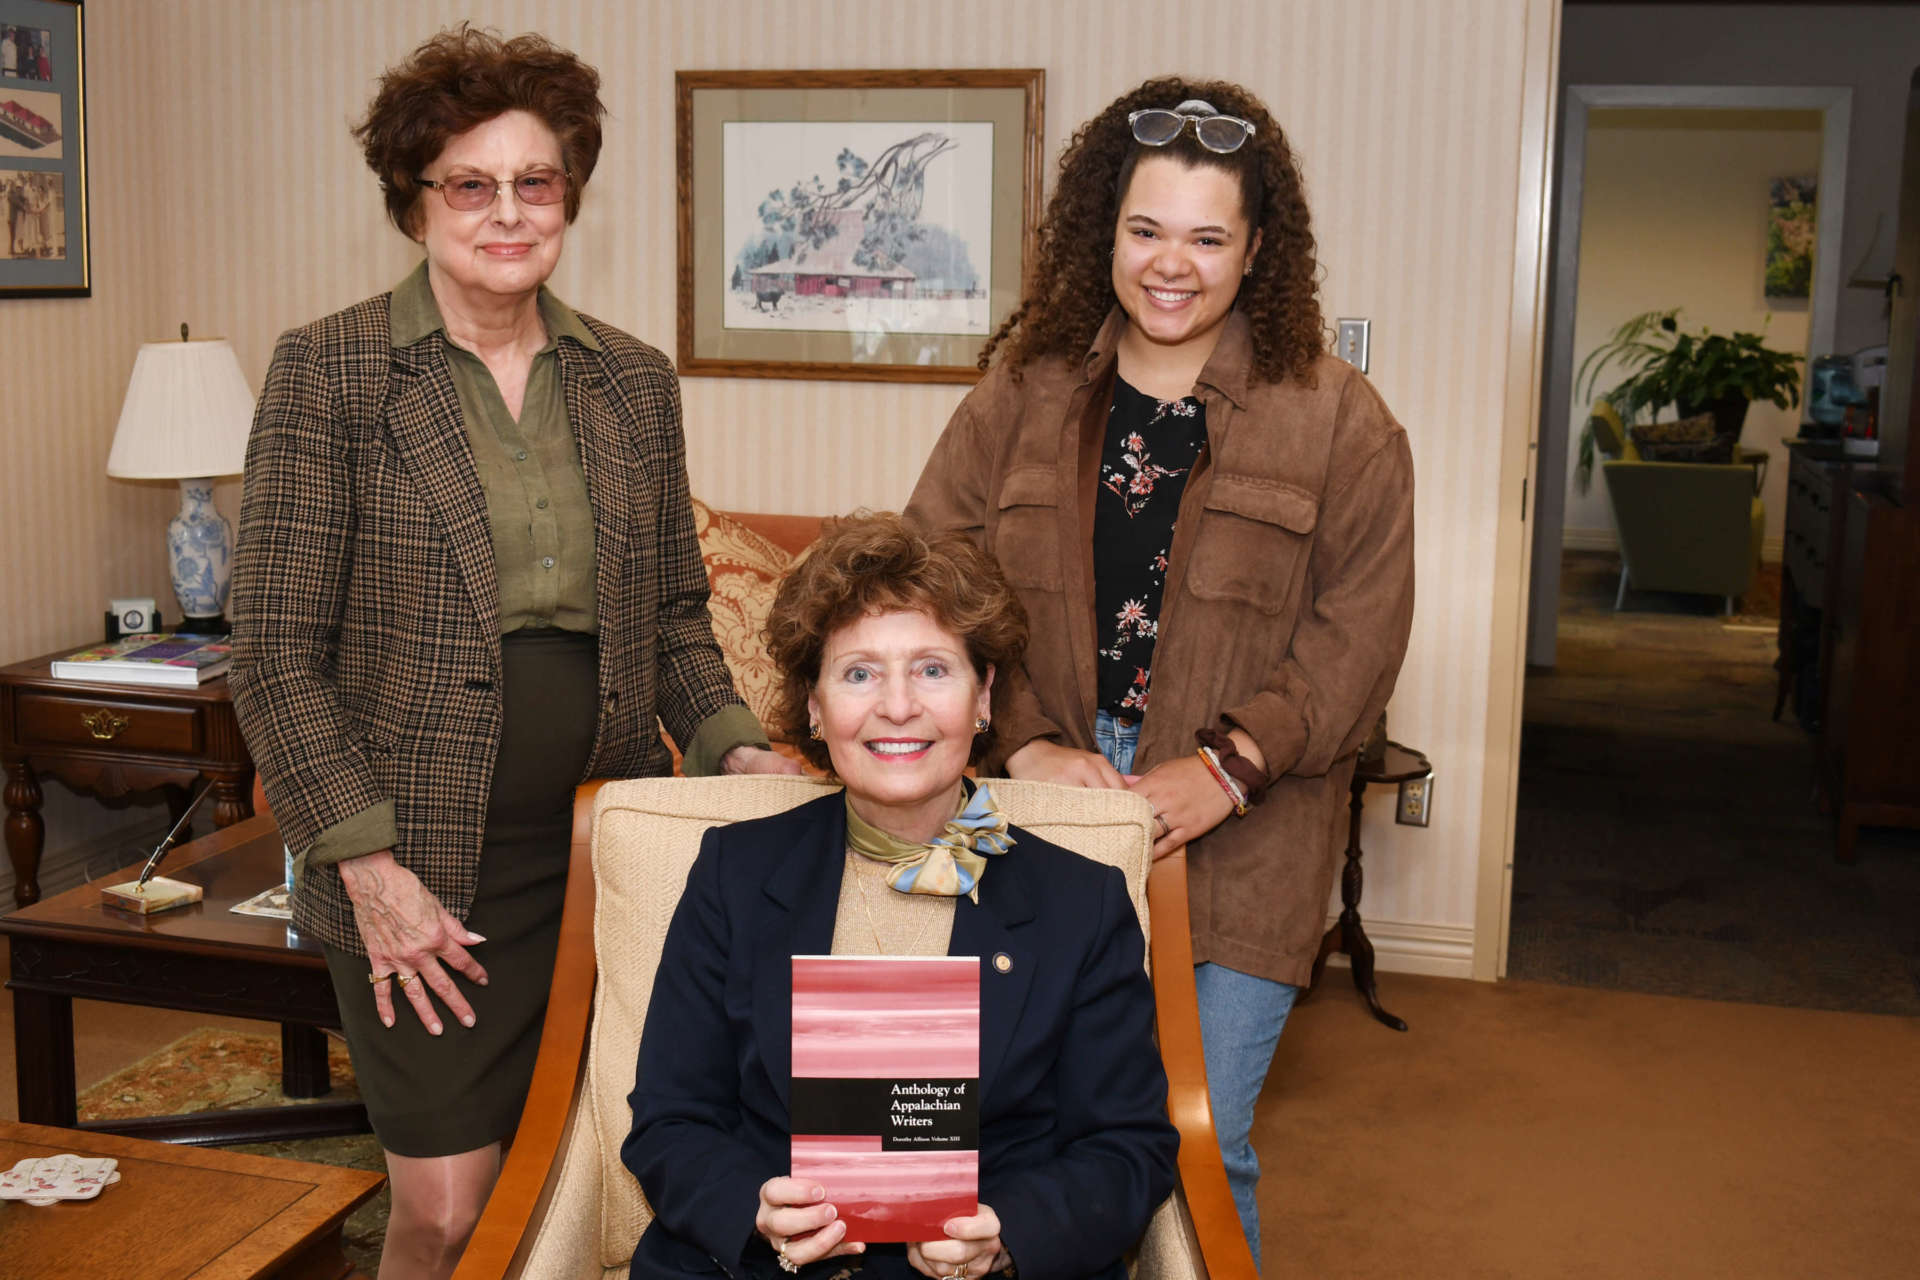 Pictured are (seated) Dr. Mary J.C. Hendrix, president, standing (l. to r.) Dr. Sylvia Baily Shurbutt, director, Center for Appalachian Studies and Communities, and Aneyla Dozier, English education major, Martinsburg, student editor of the Anthology.